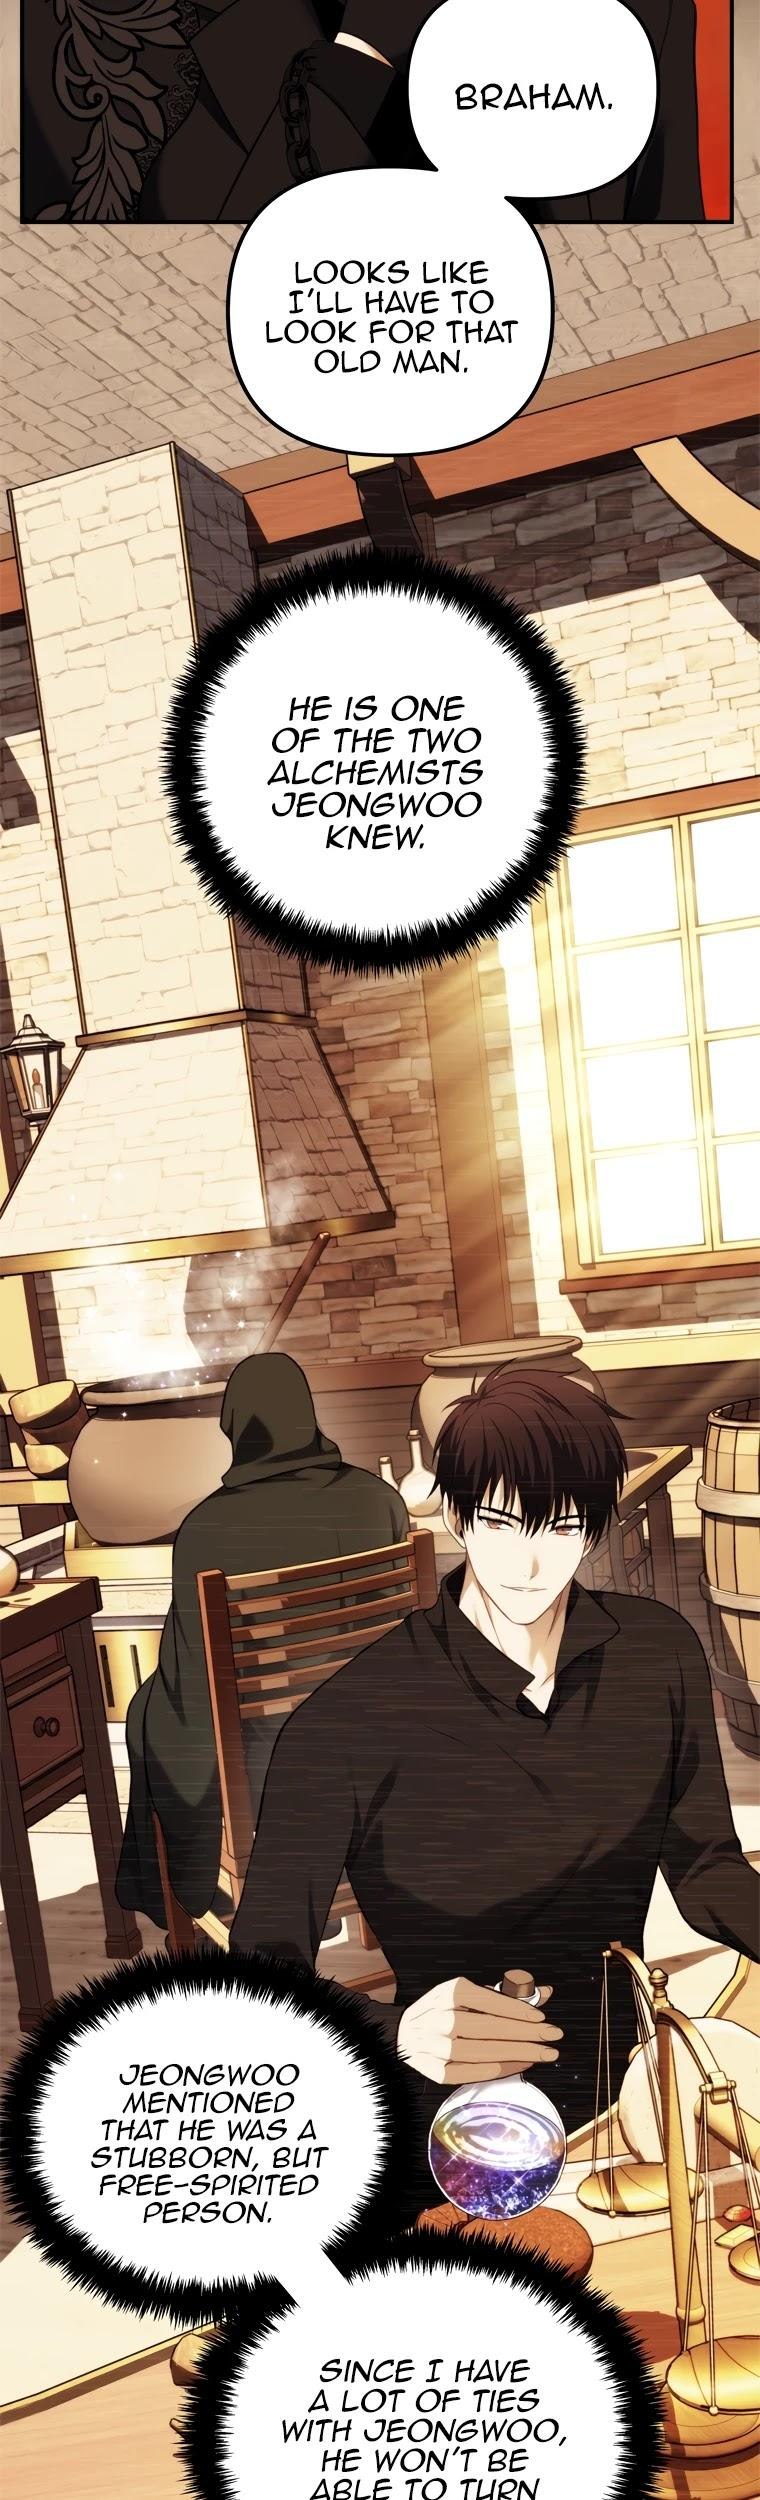 Ranker Who Lives A Second Time Chapter 95 page 15 - Mangakakalot